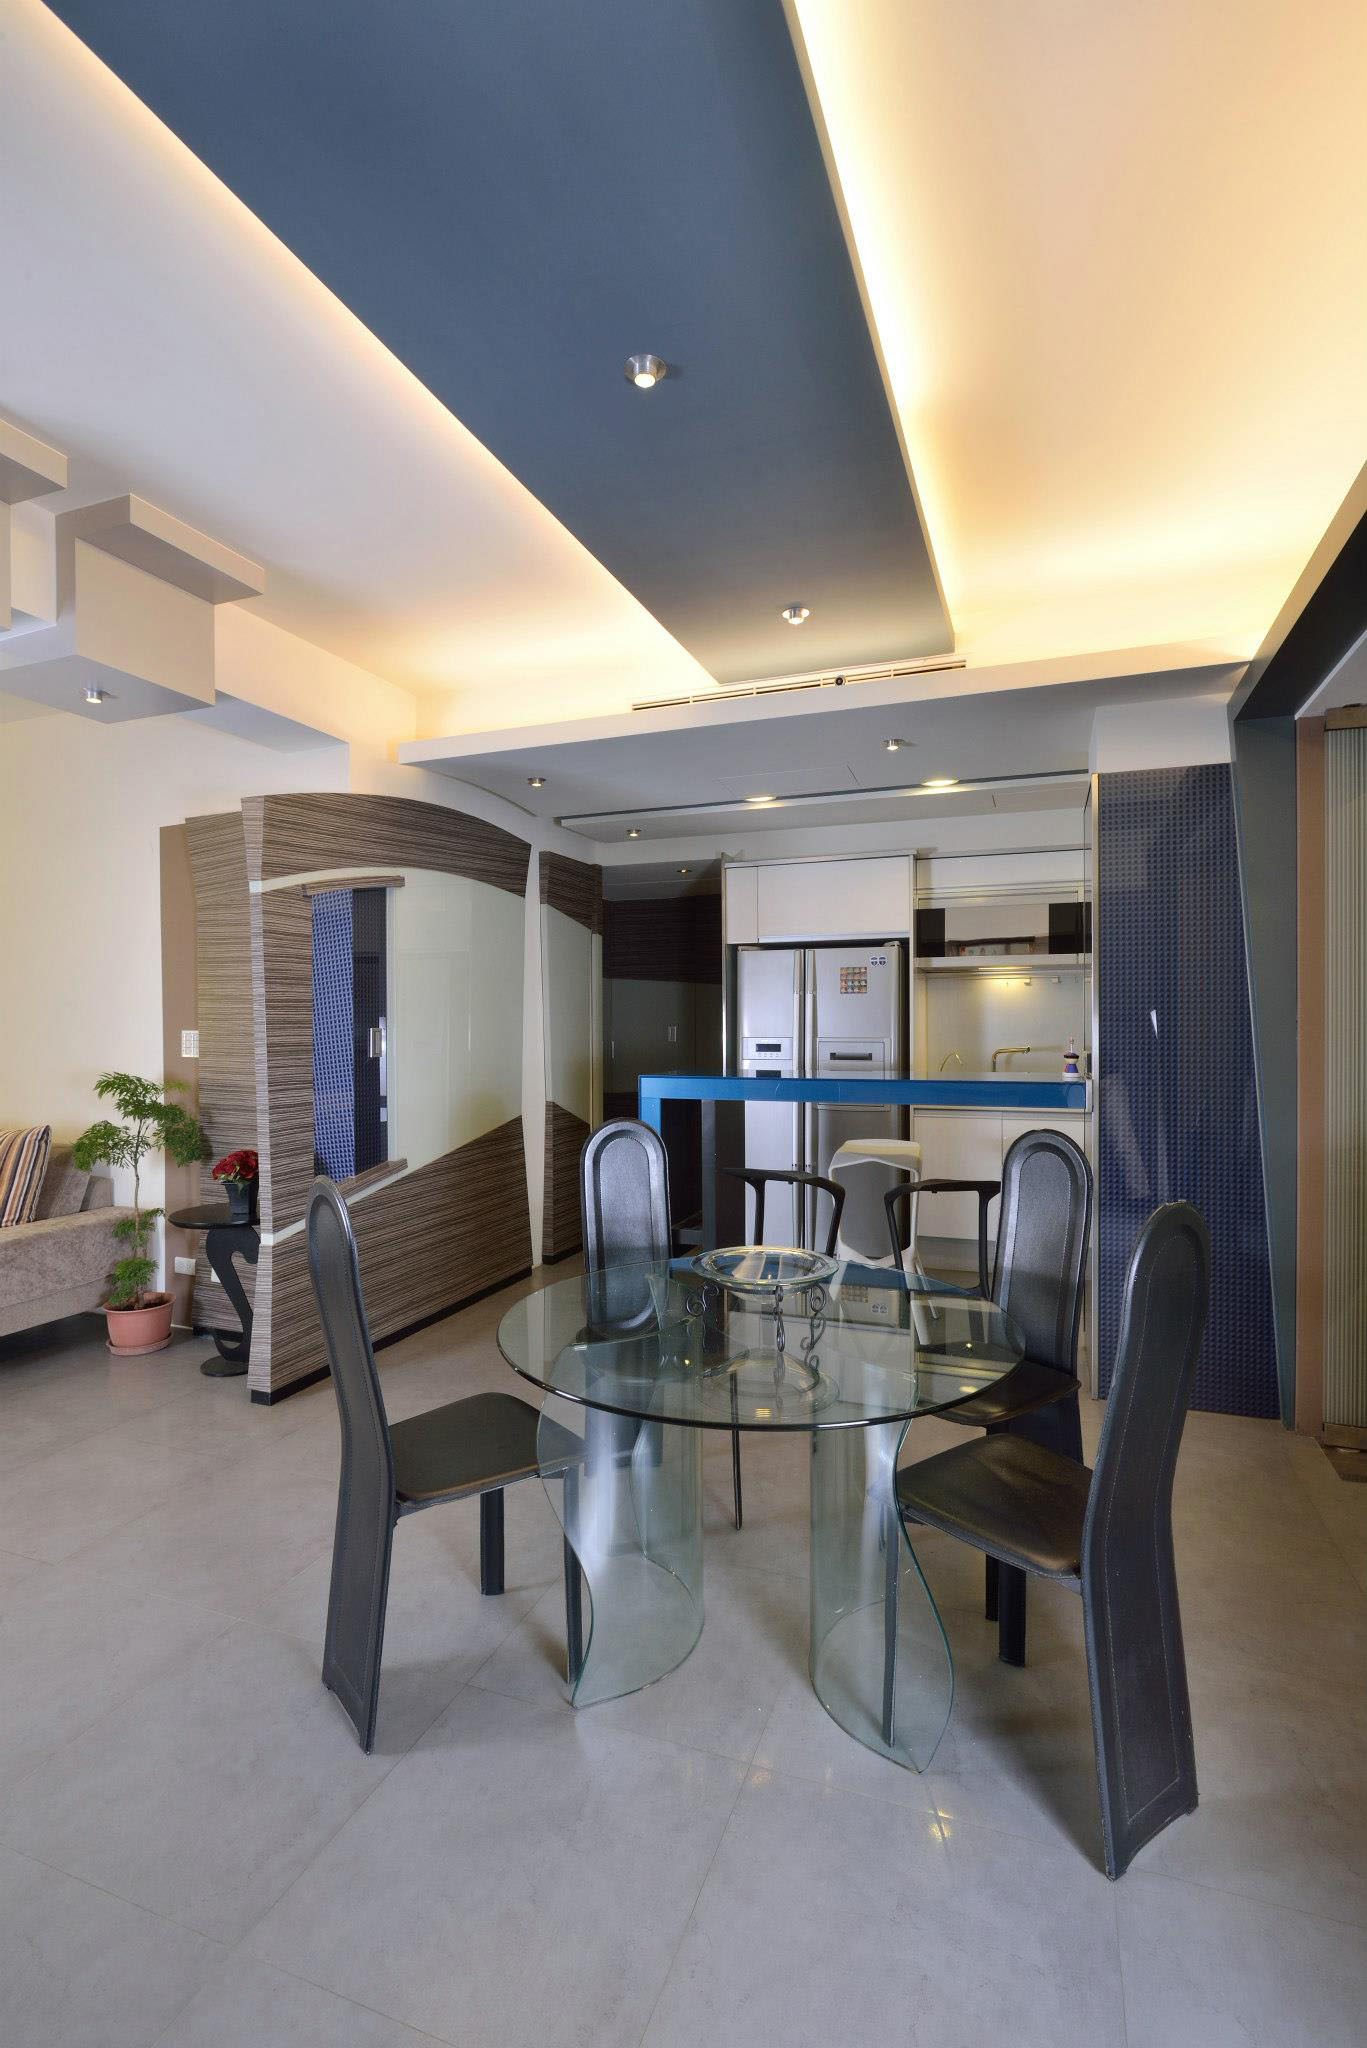 Drop Ceiling Decor With Yellow Neon Lighting Over The Kitchen Area And Dining Area